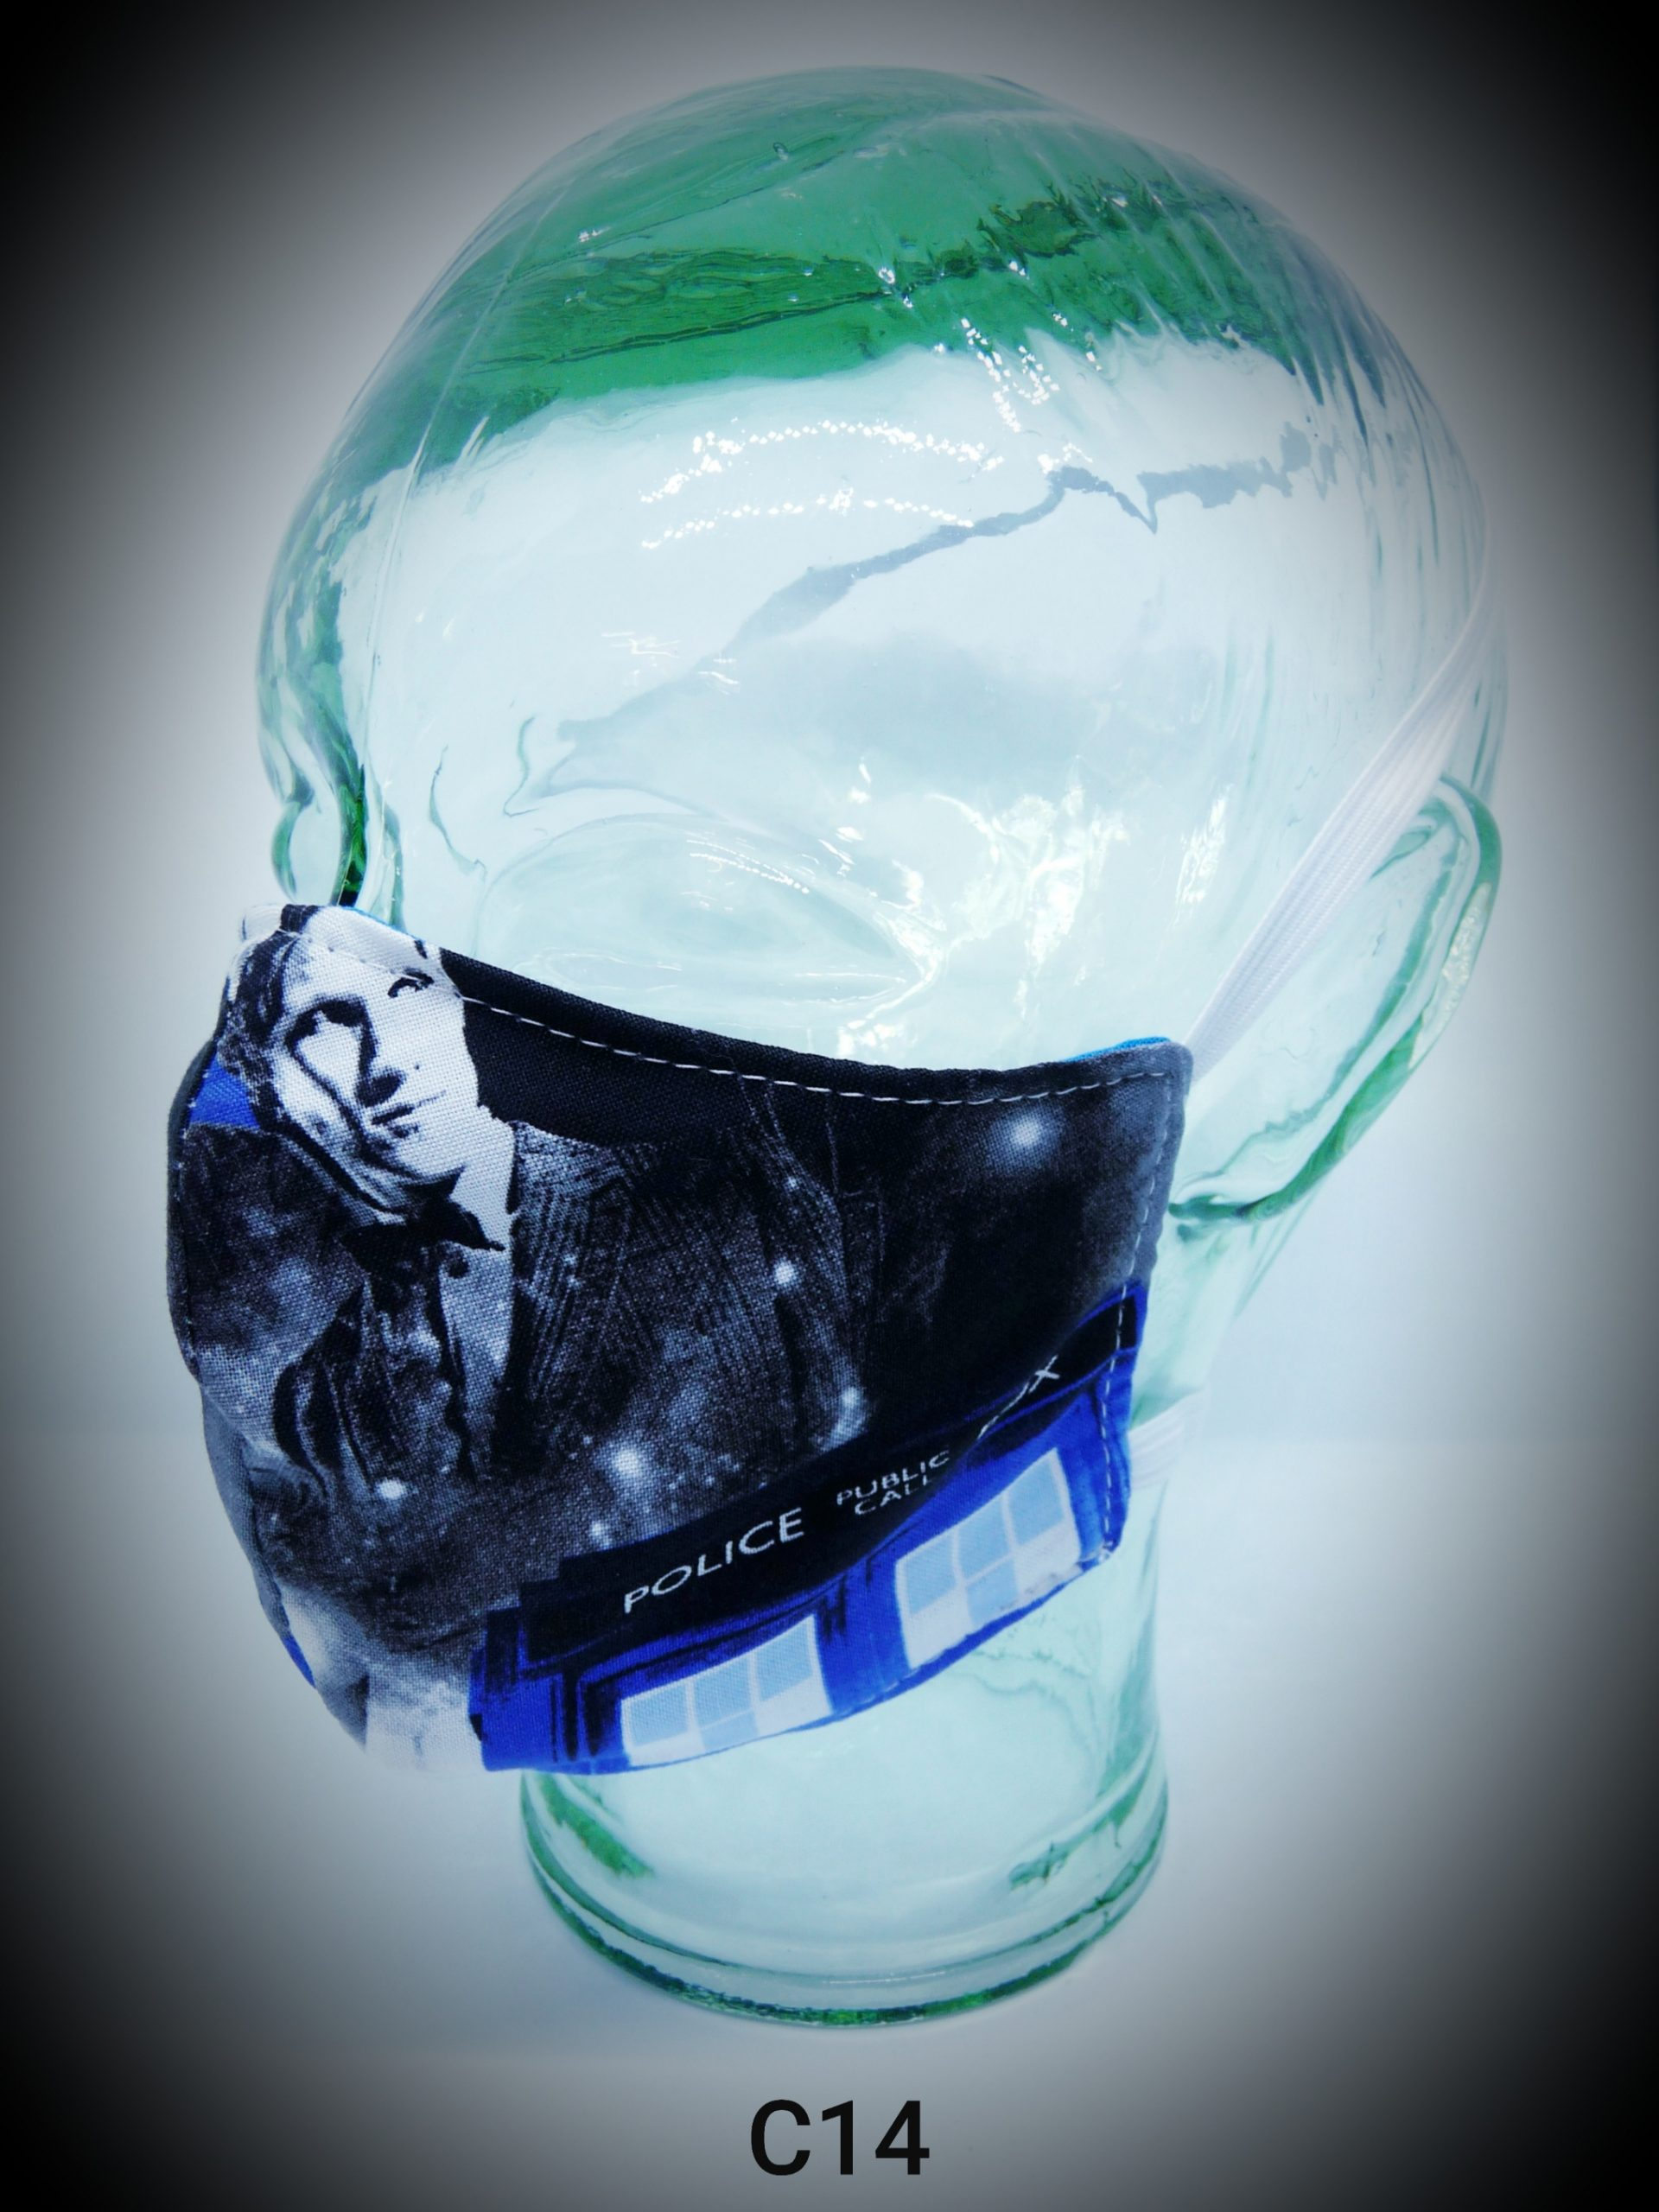 face mask washable reusable ppe c14 dr who fabric